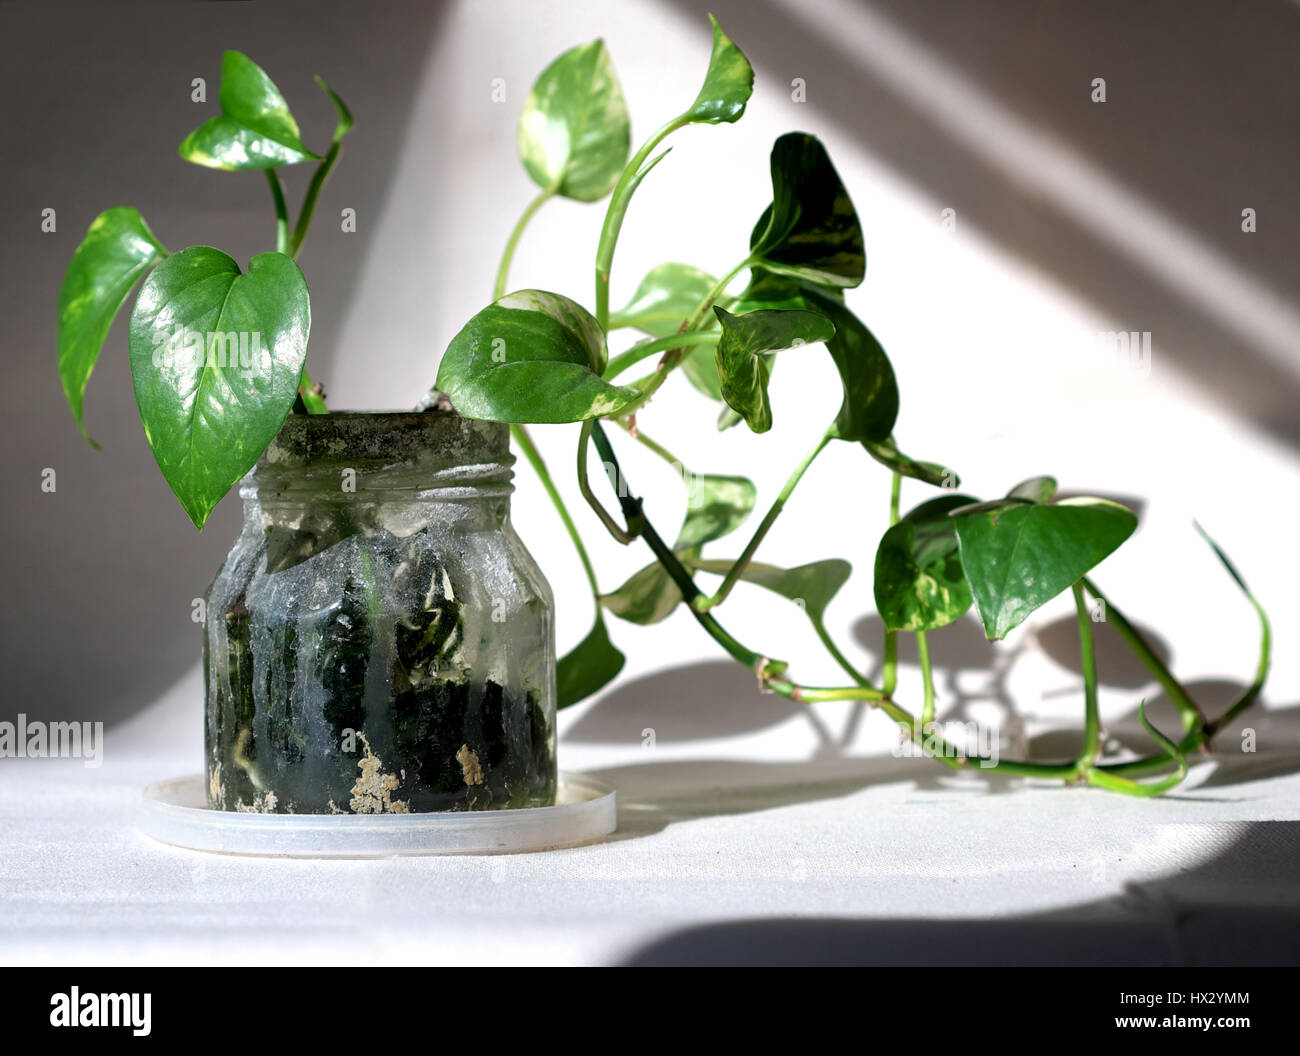 philodendron pflanzen im glas hydrokultur stockfoto bild 136519284 alamy. Black Bedroom Furniture Sets. Home Design Ideas